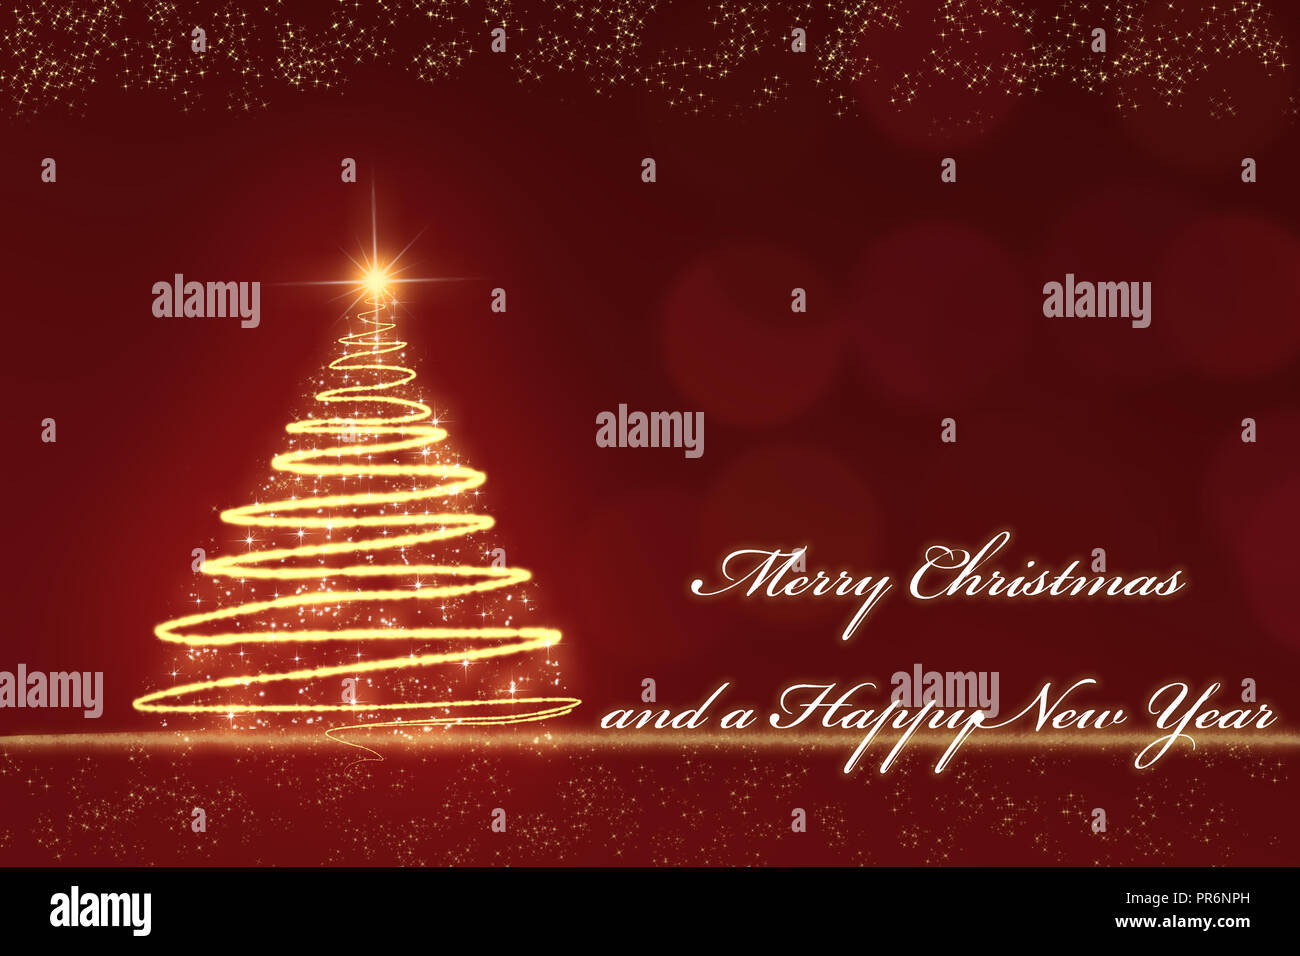 golden sparkling Christmas tree against a red blurred background with golden snowflakes and the text Merry Christmas and a Happy New Year - Stock Image